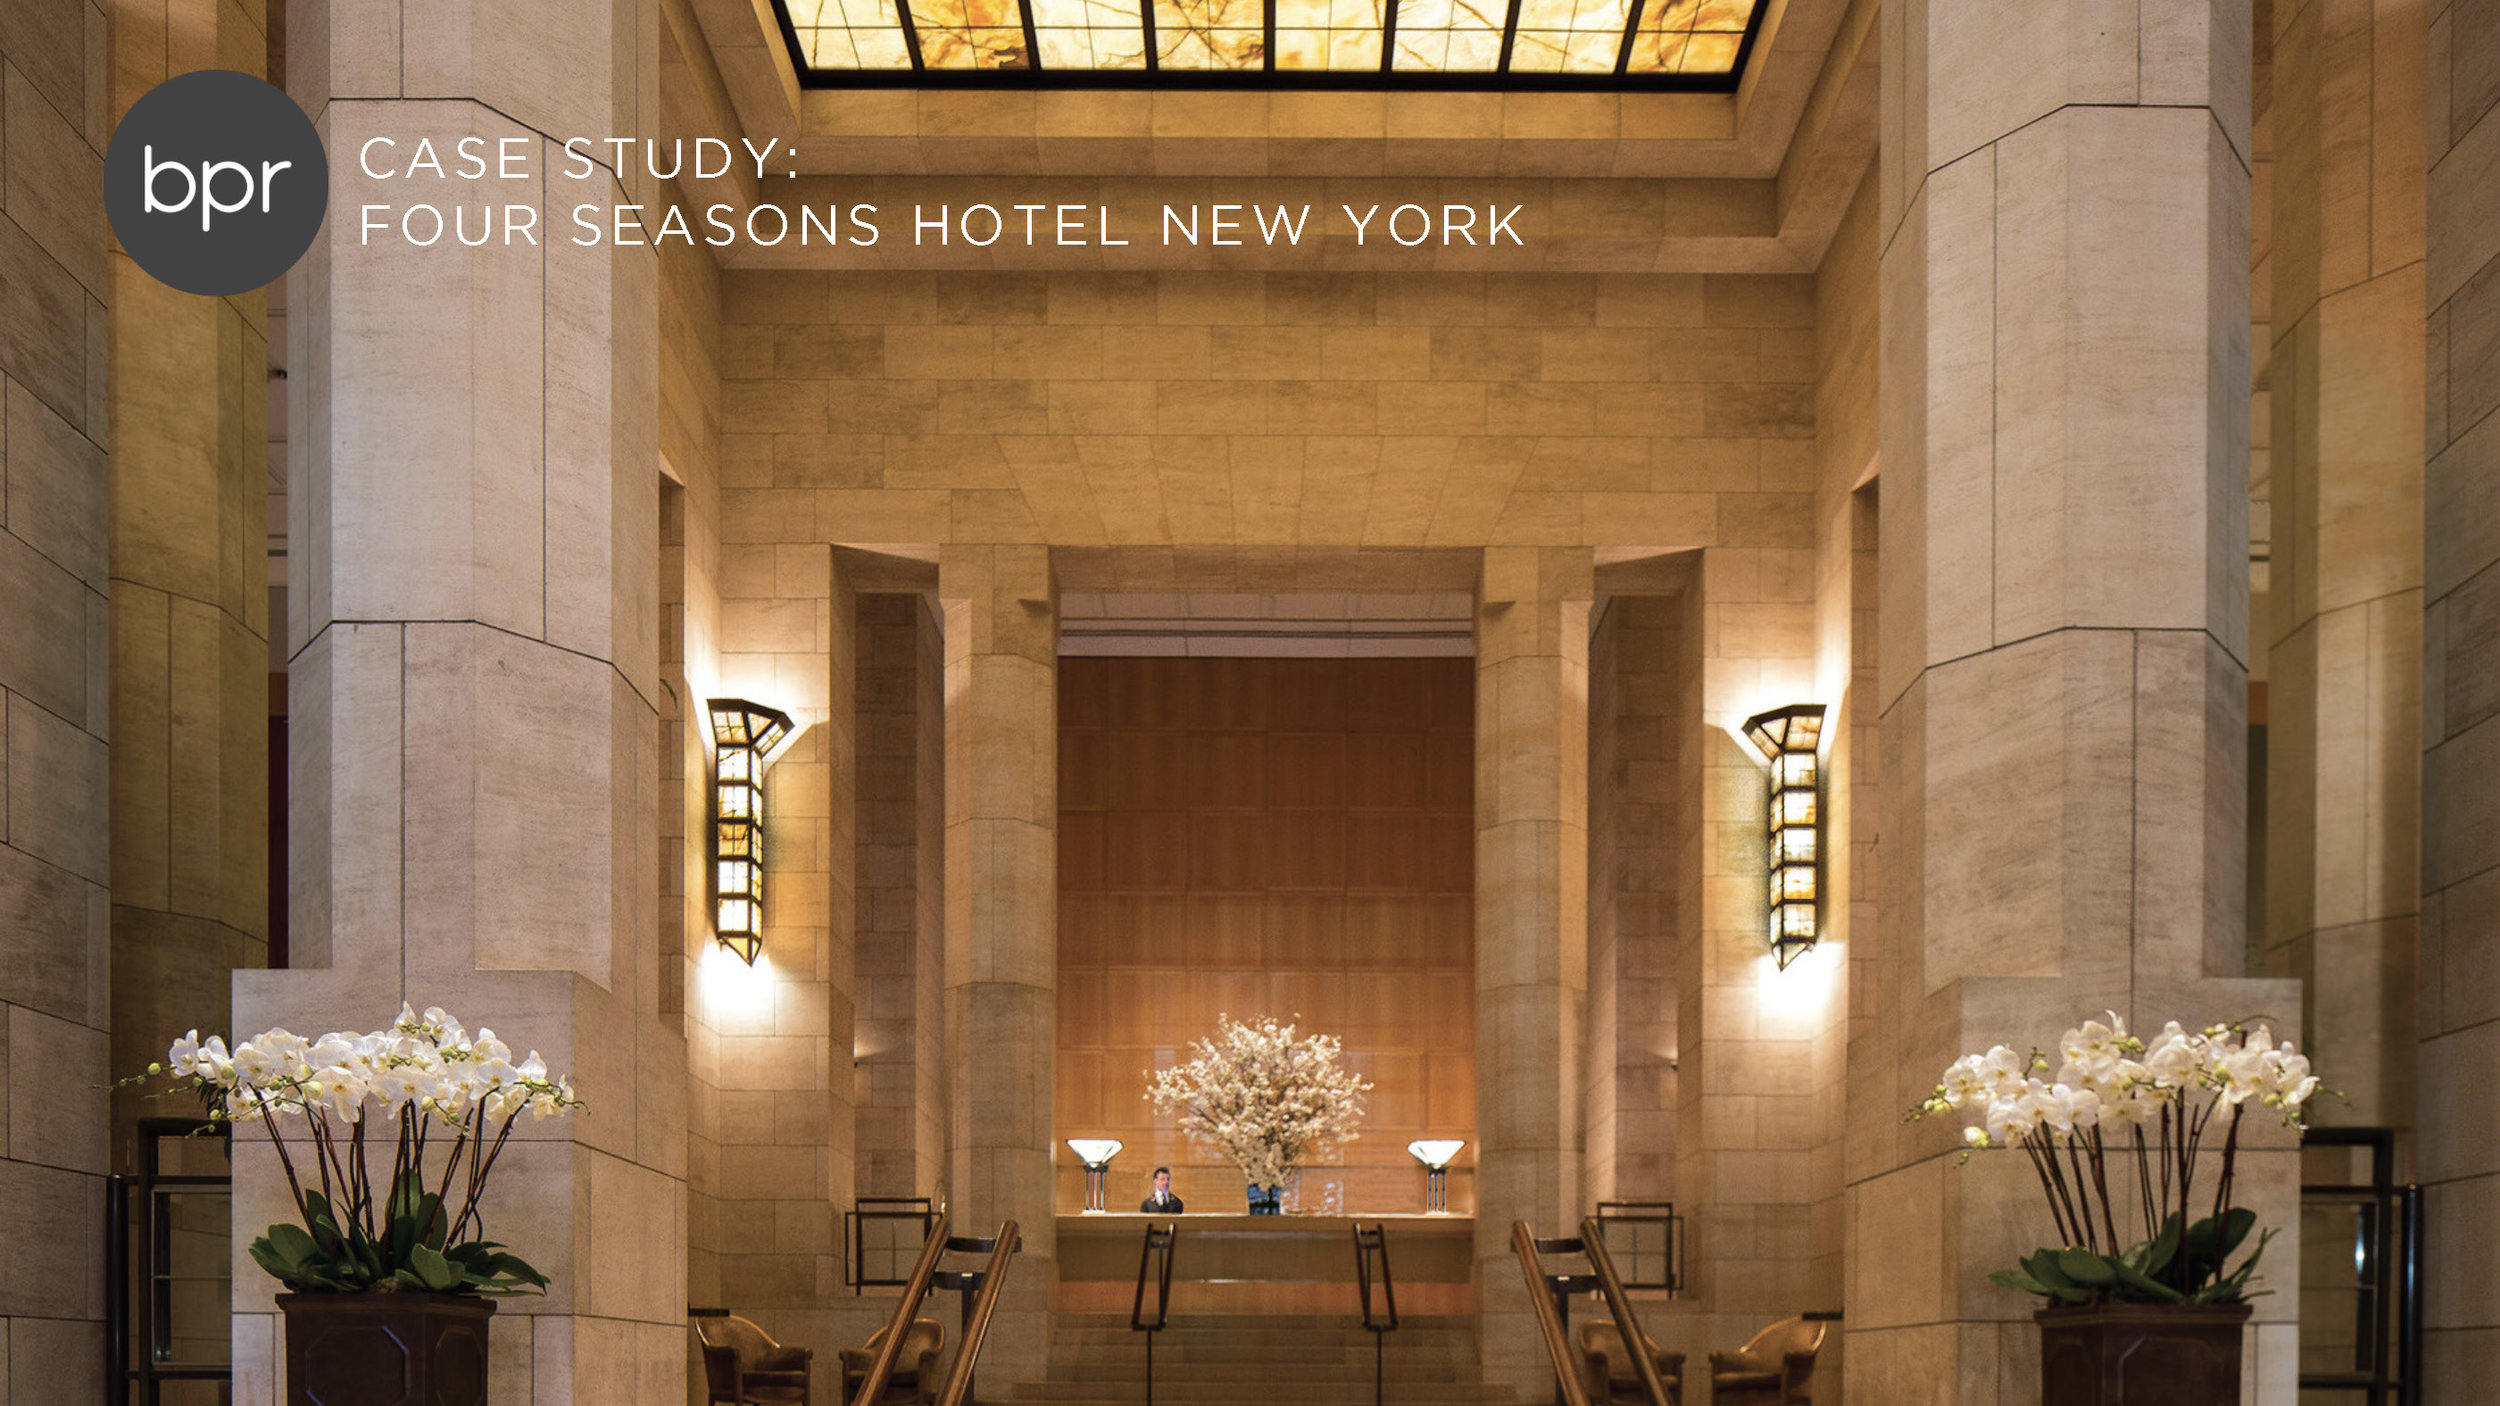 Four Seasons NY Case Study_Page_1.jpg